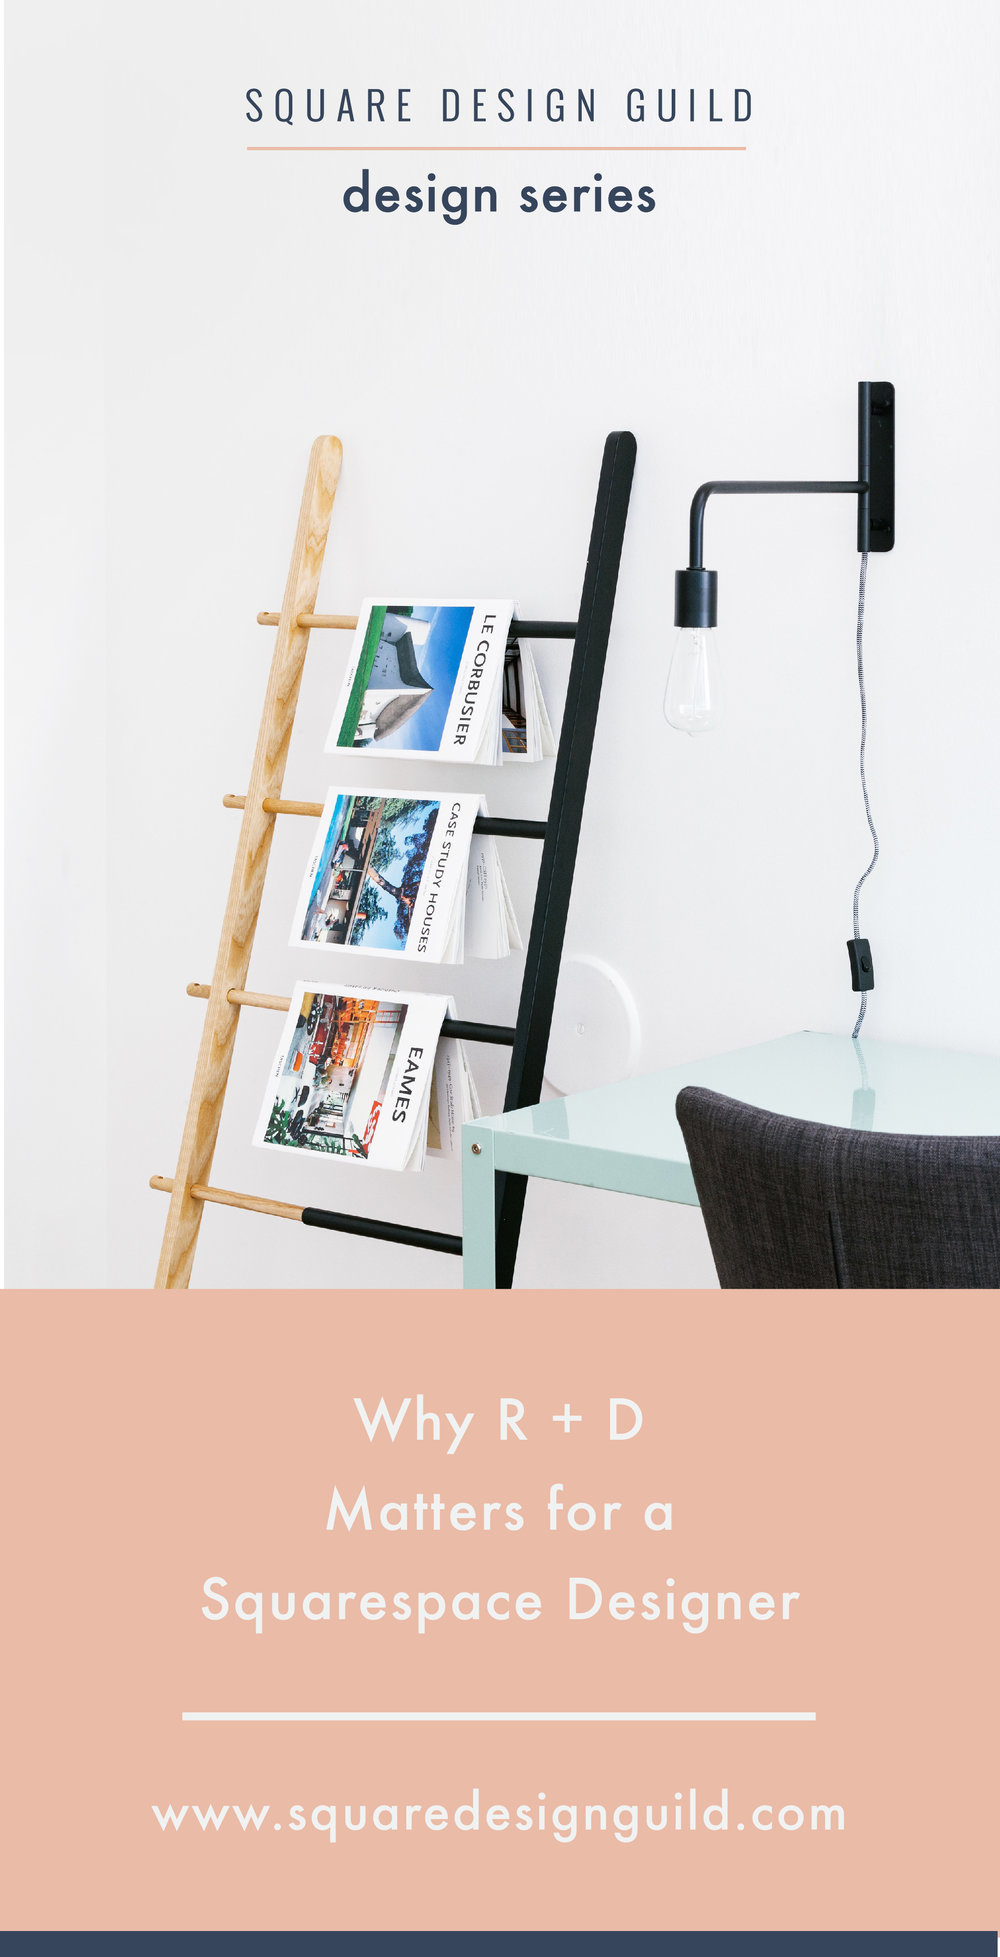 Square Design Guild | Why Research and Development Matters for a Squarespace Designer